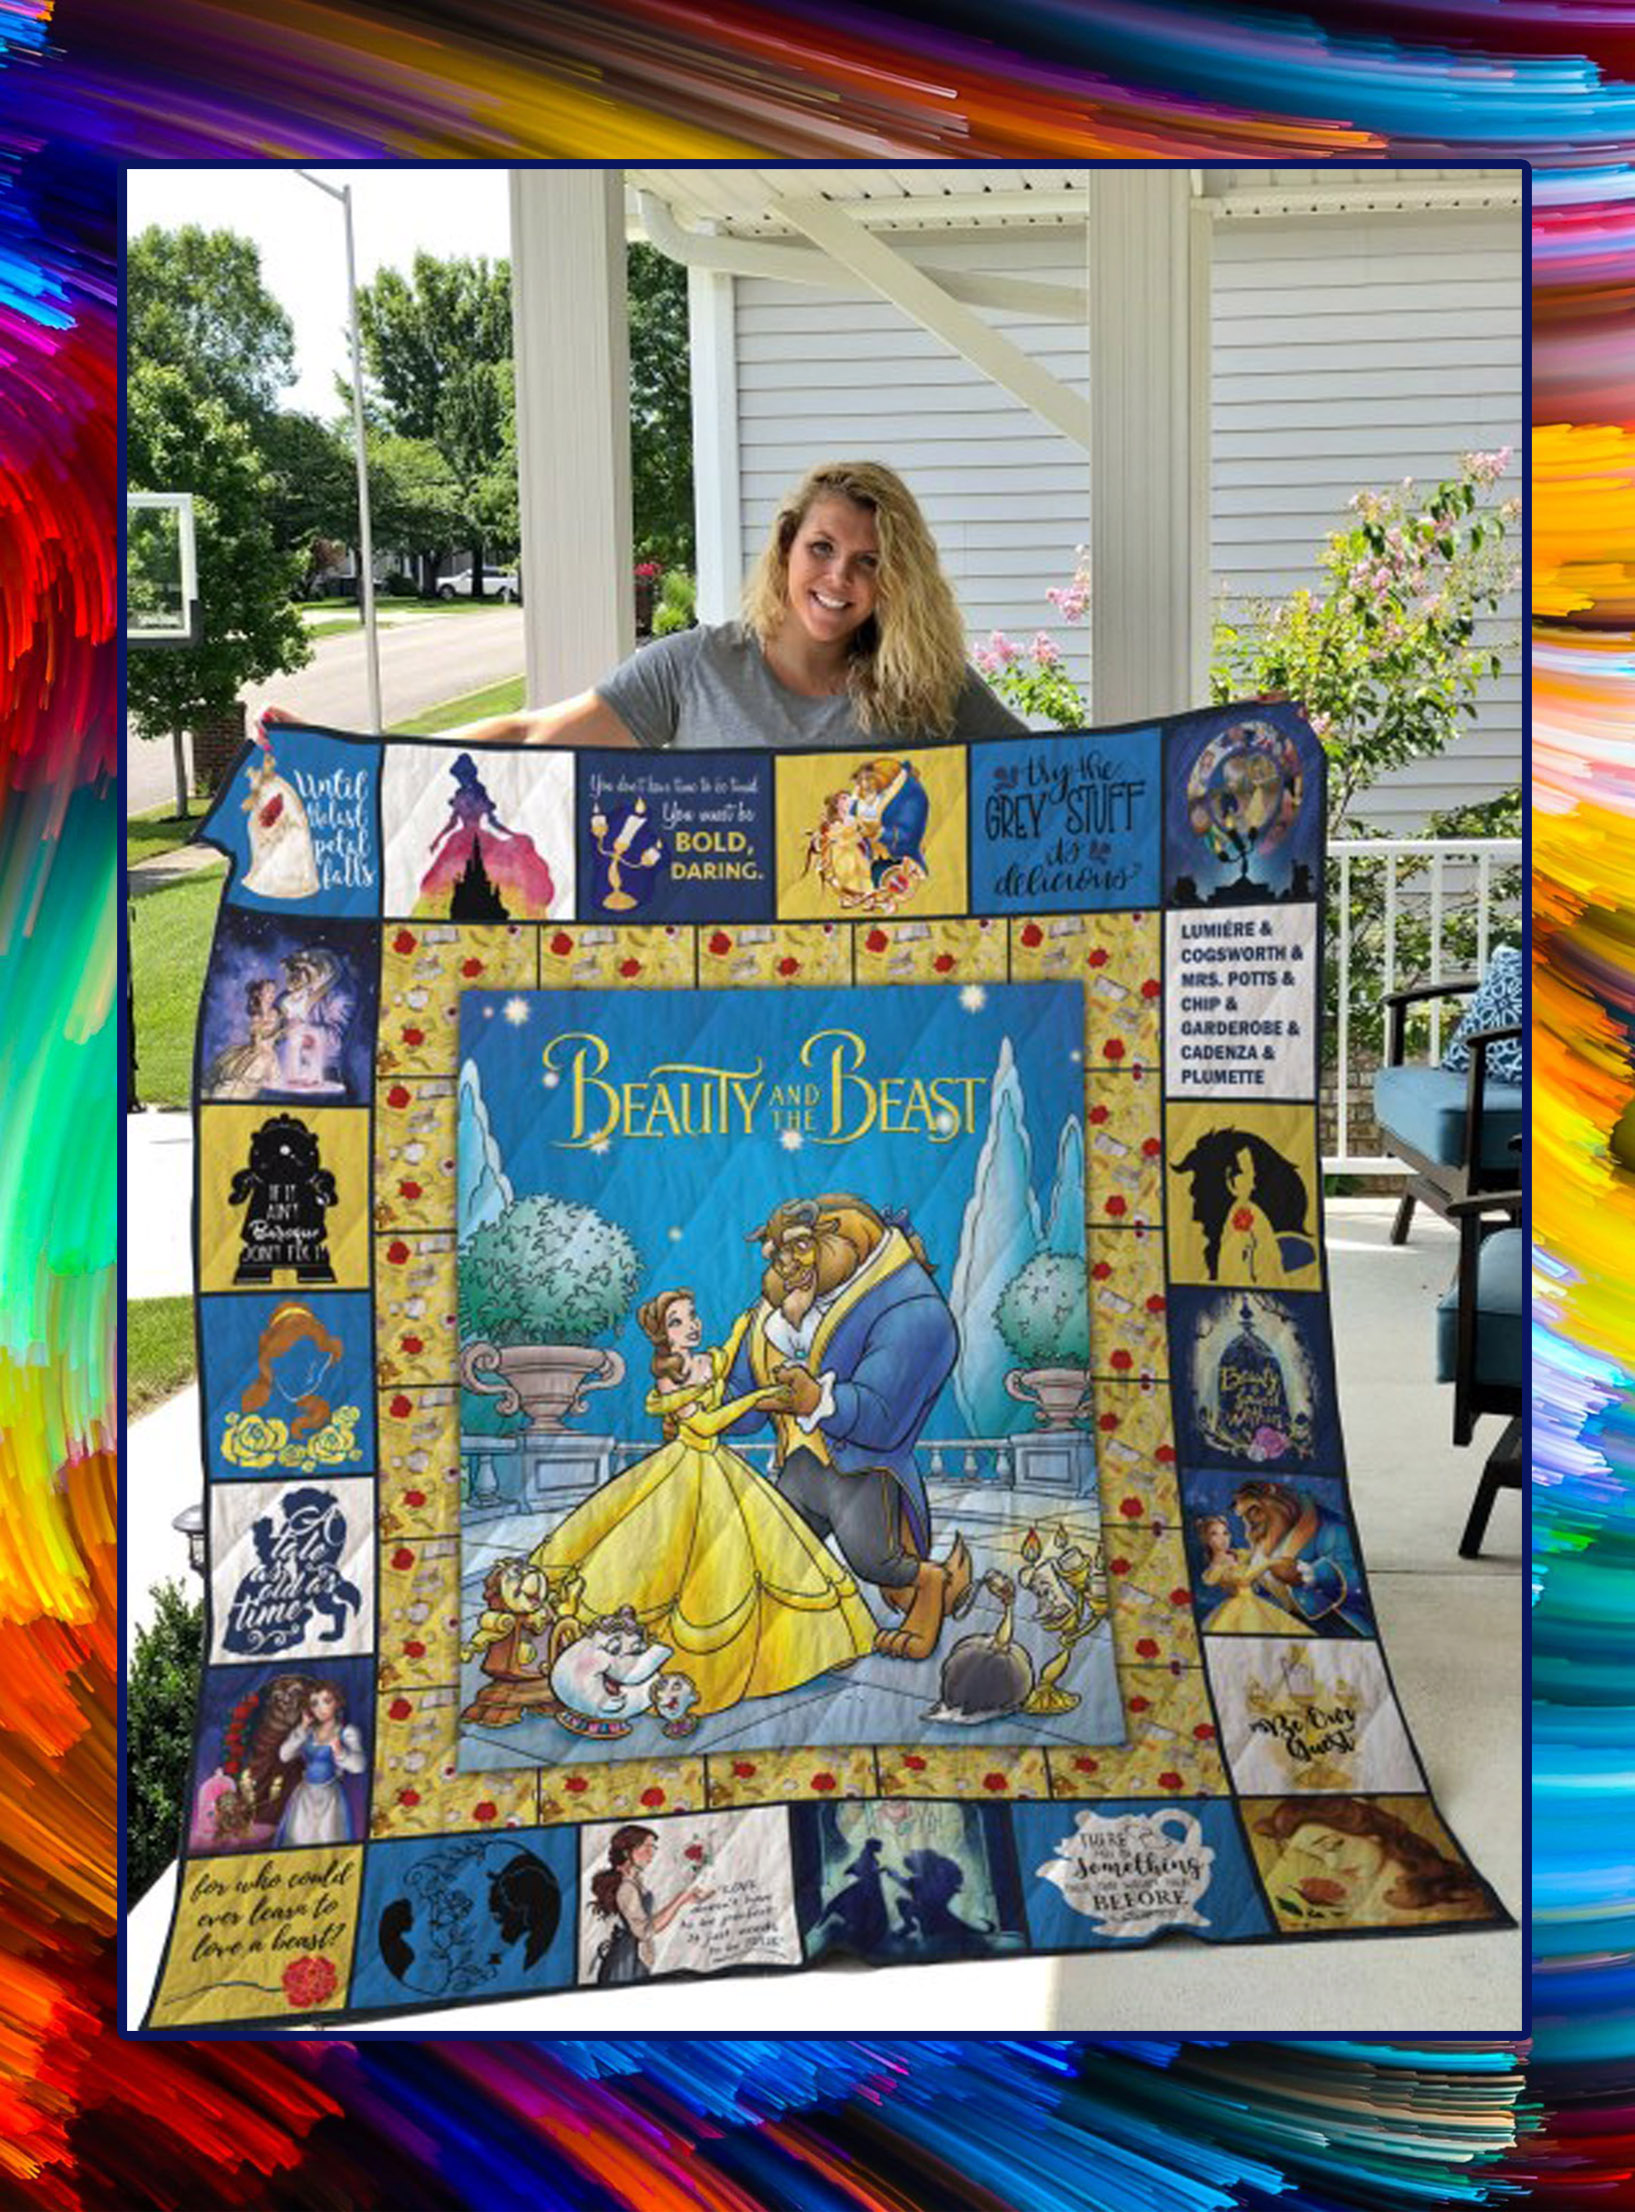 Beauty and the beast quilt blanket - queen